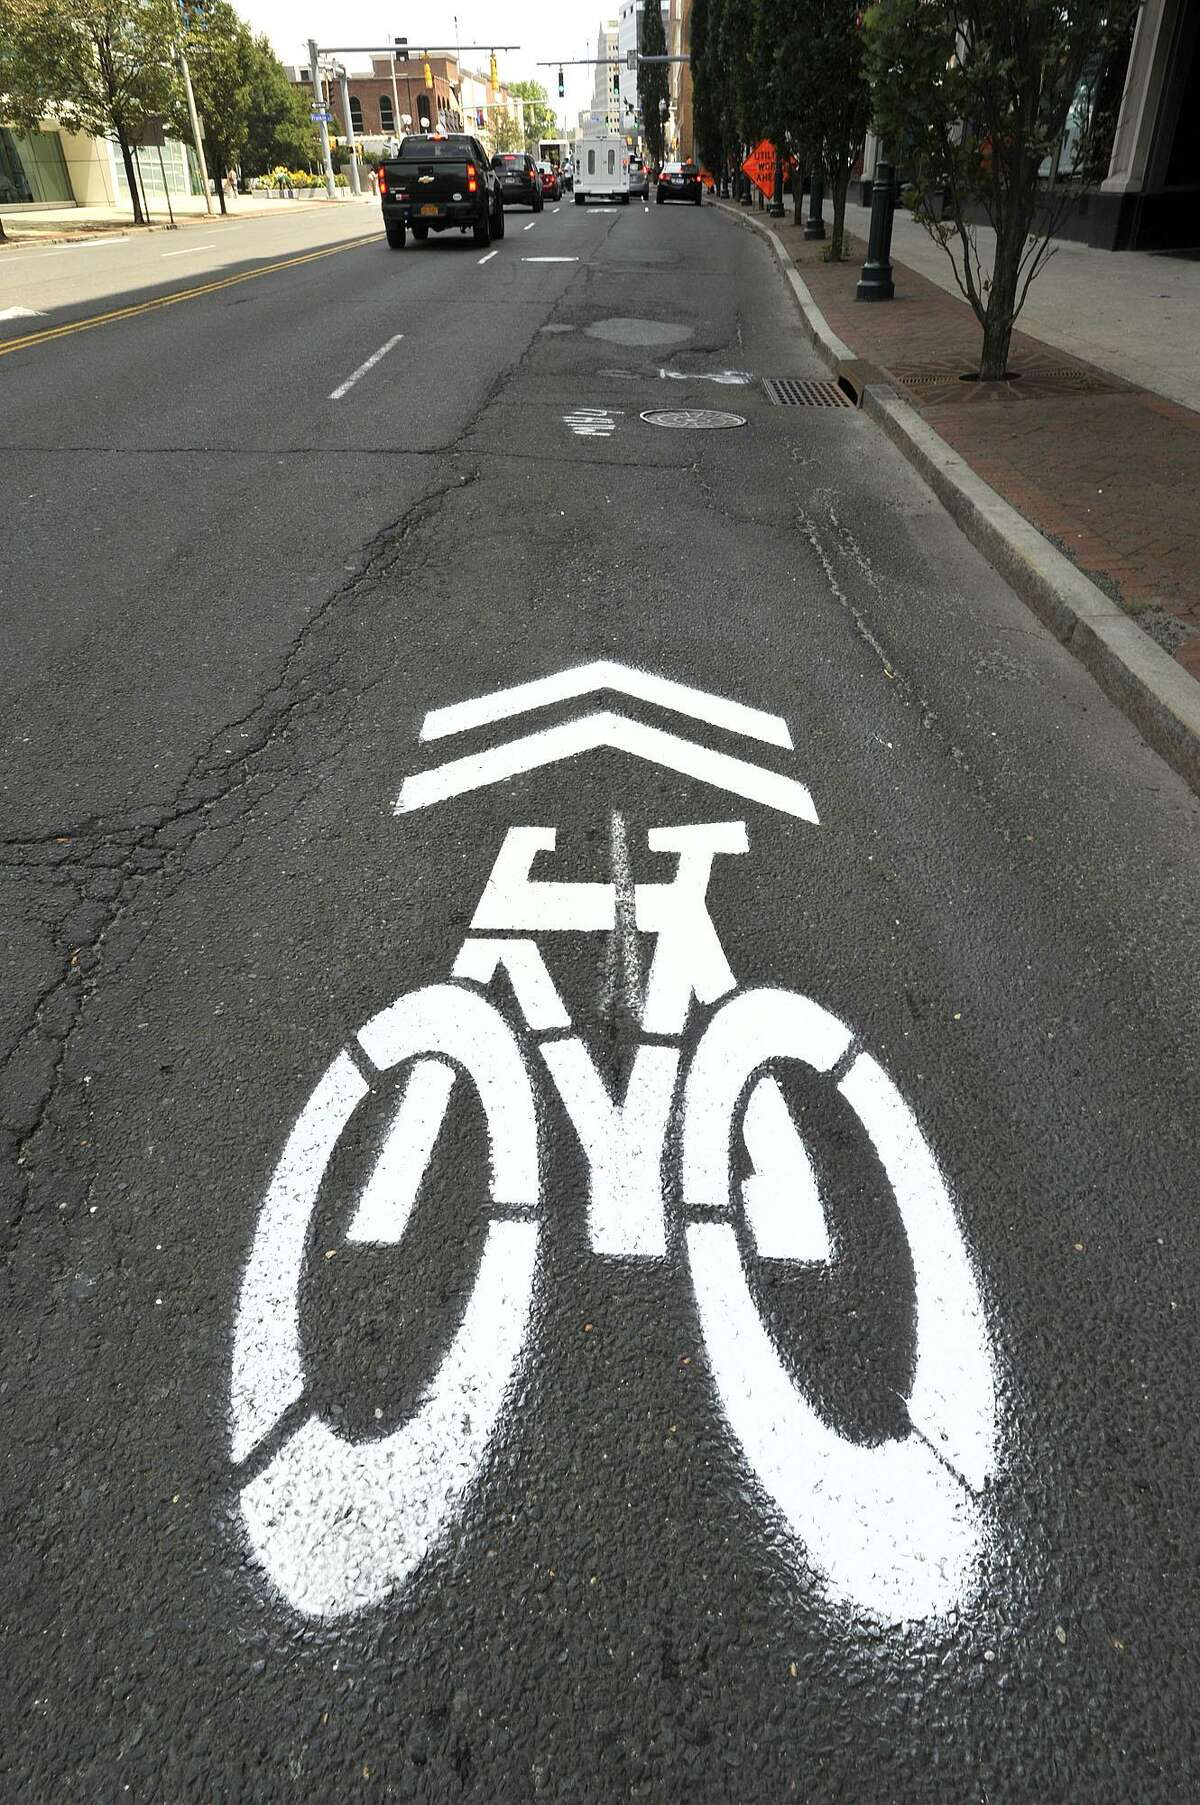 Shared use arrows are painted along Broad Street between Washington Boulevard and Atlantic Street in Stamford, Conn., on Tuesday, July 28, 2015. This is the start of a network of shared bicycle lanes that will run throughout the city.